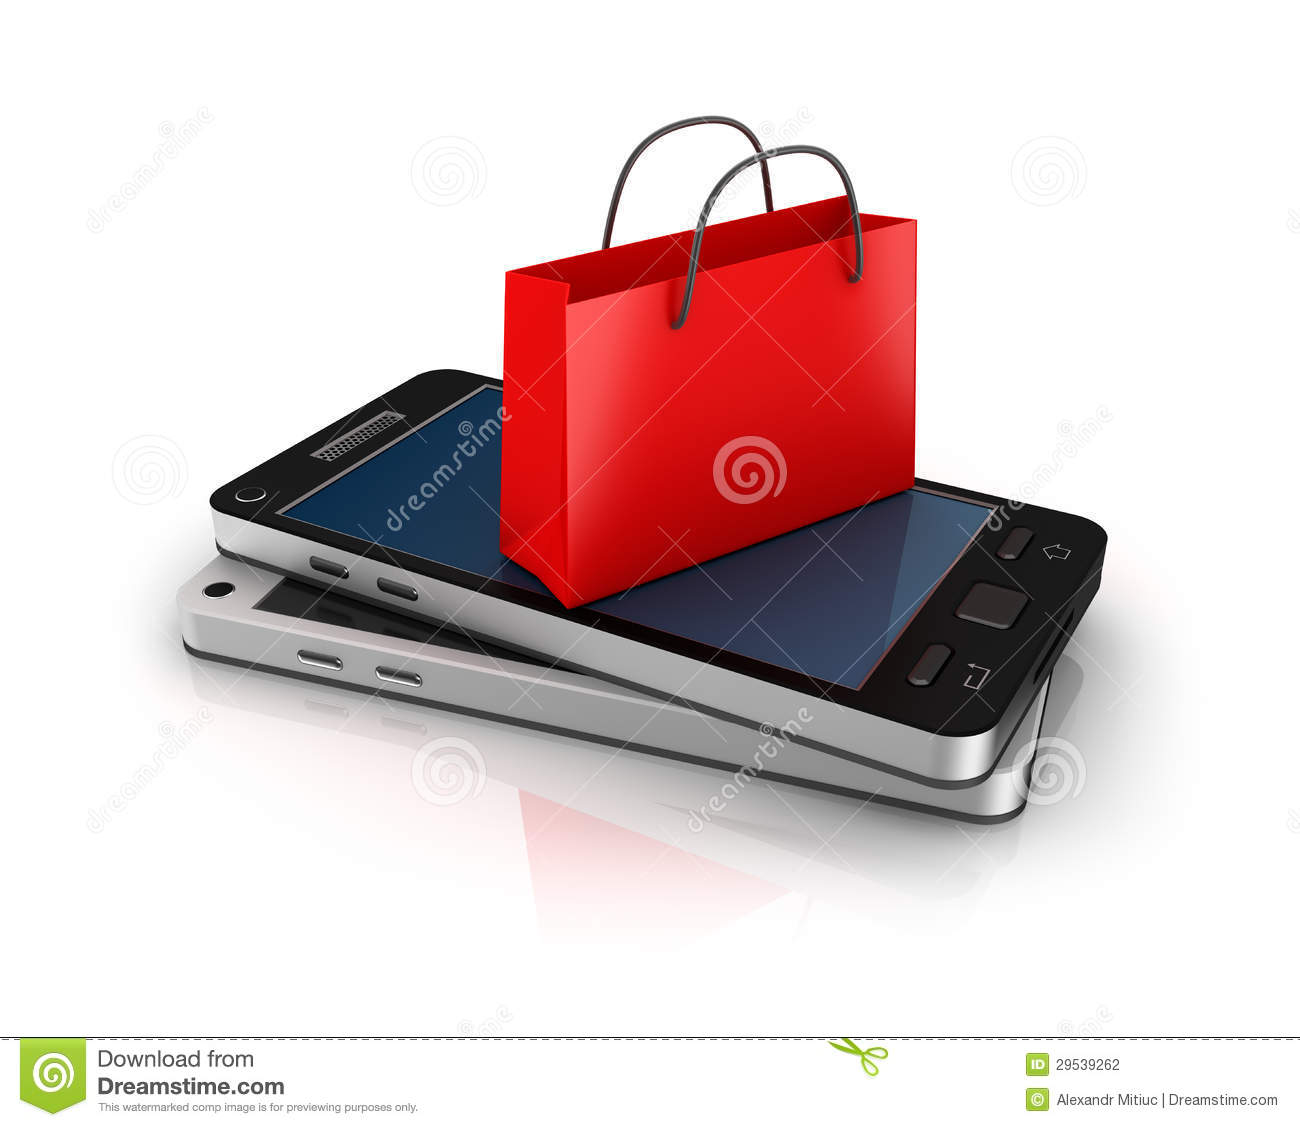 mobile phone with shopping bag online shopping concept. Black Bedroom Furniture Sets. Home Design Ideas